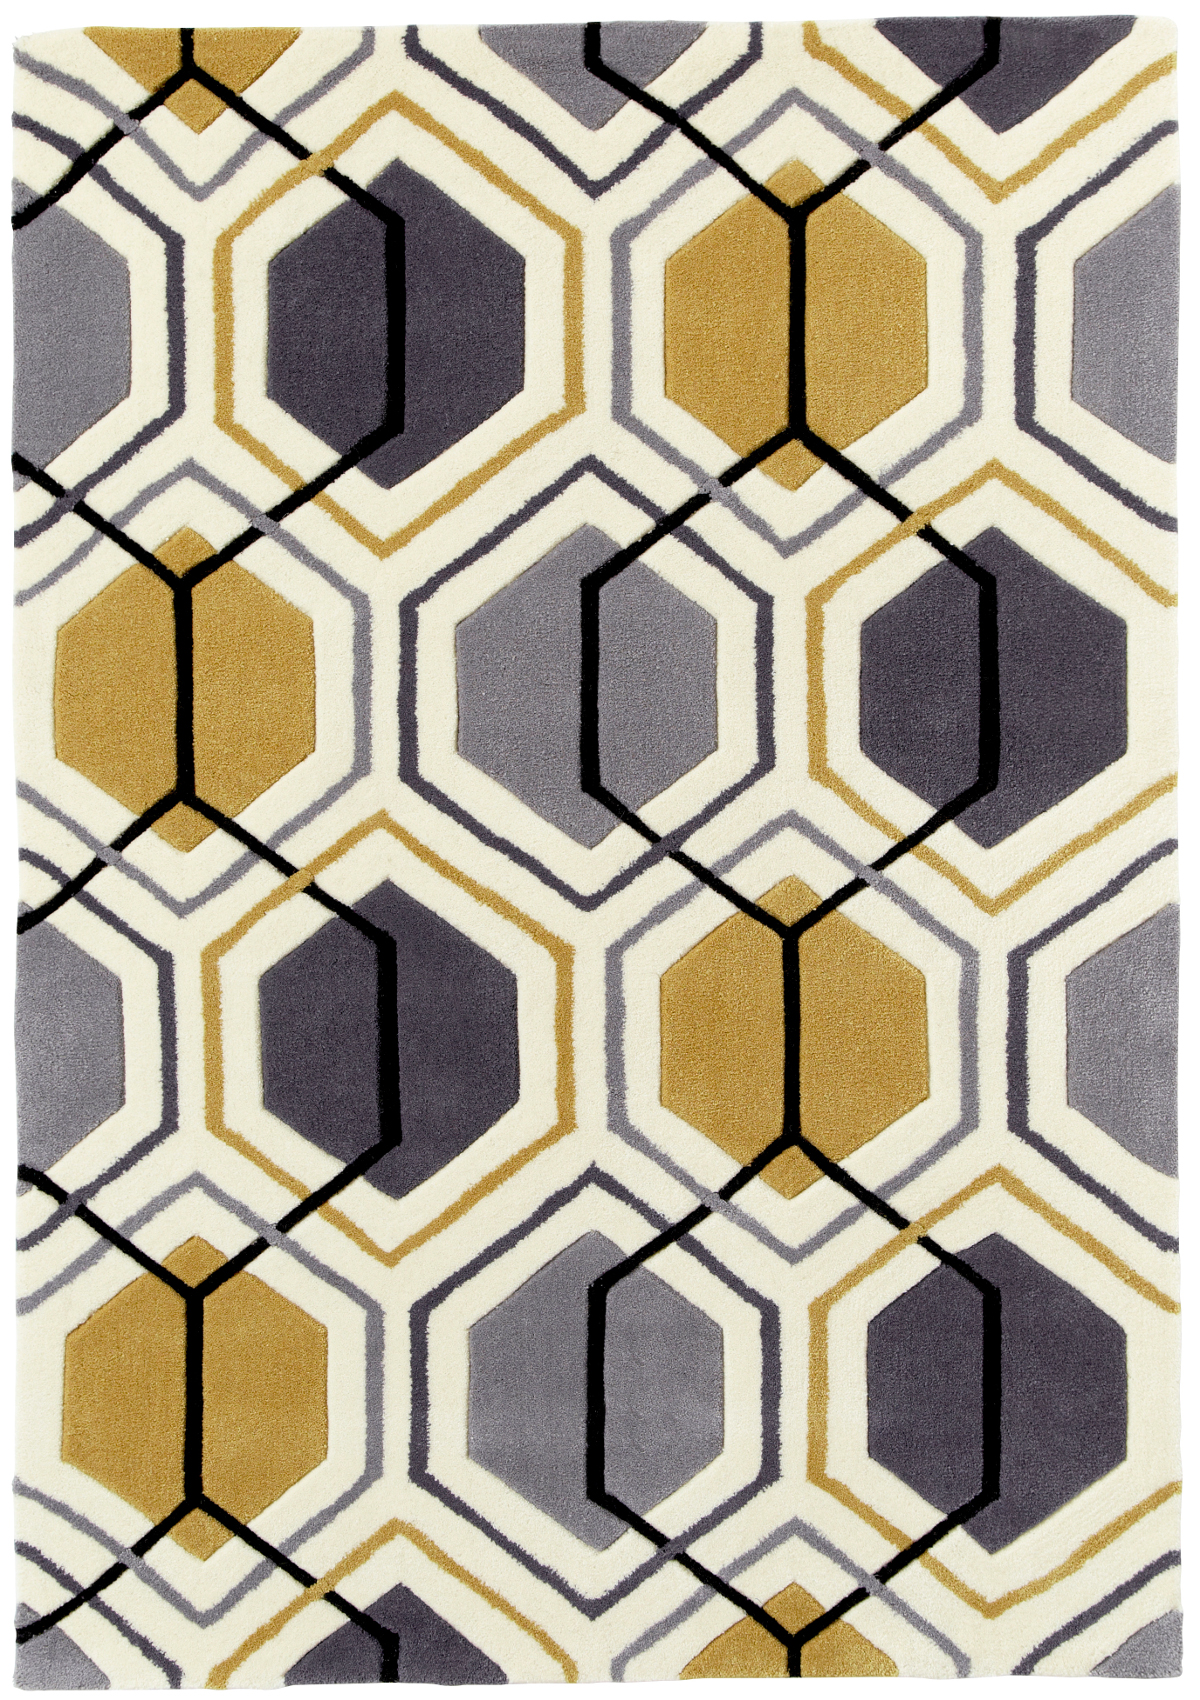 Modern Geometric Design Rug Hexagon 100 Acrylic Hand